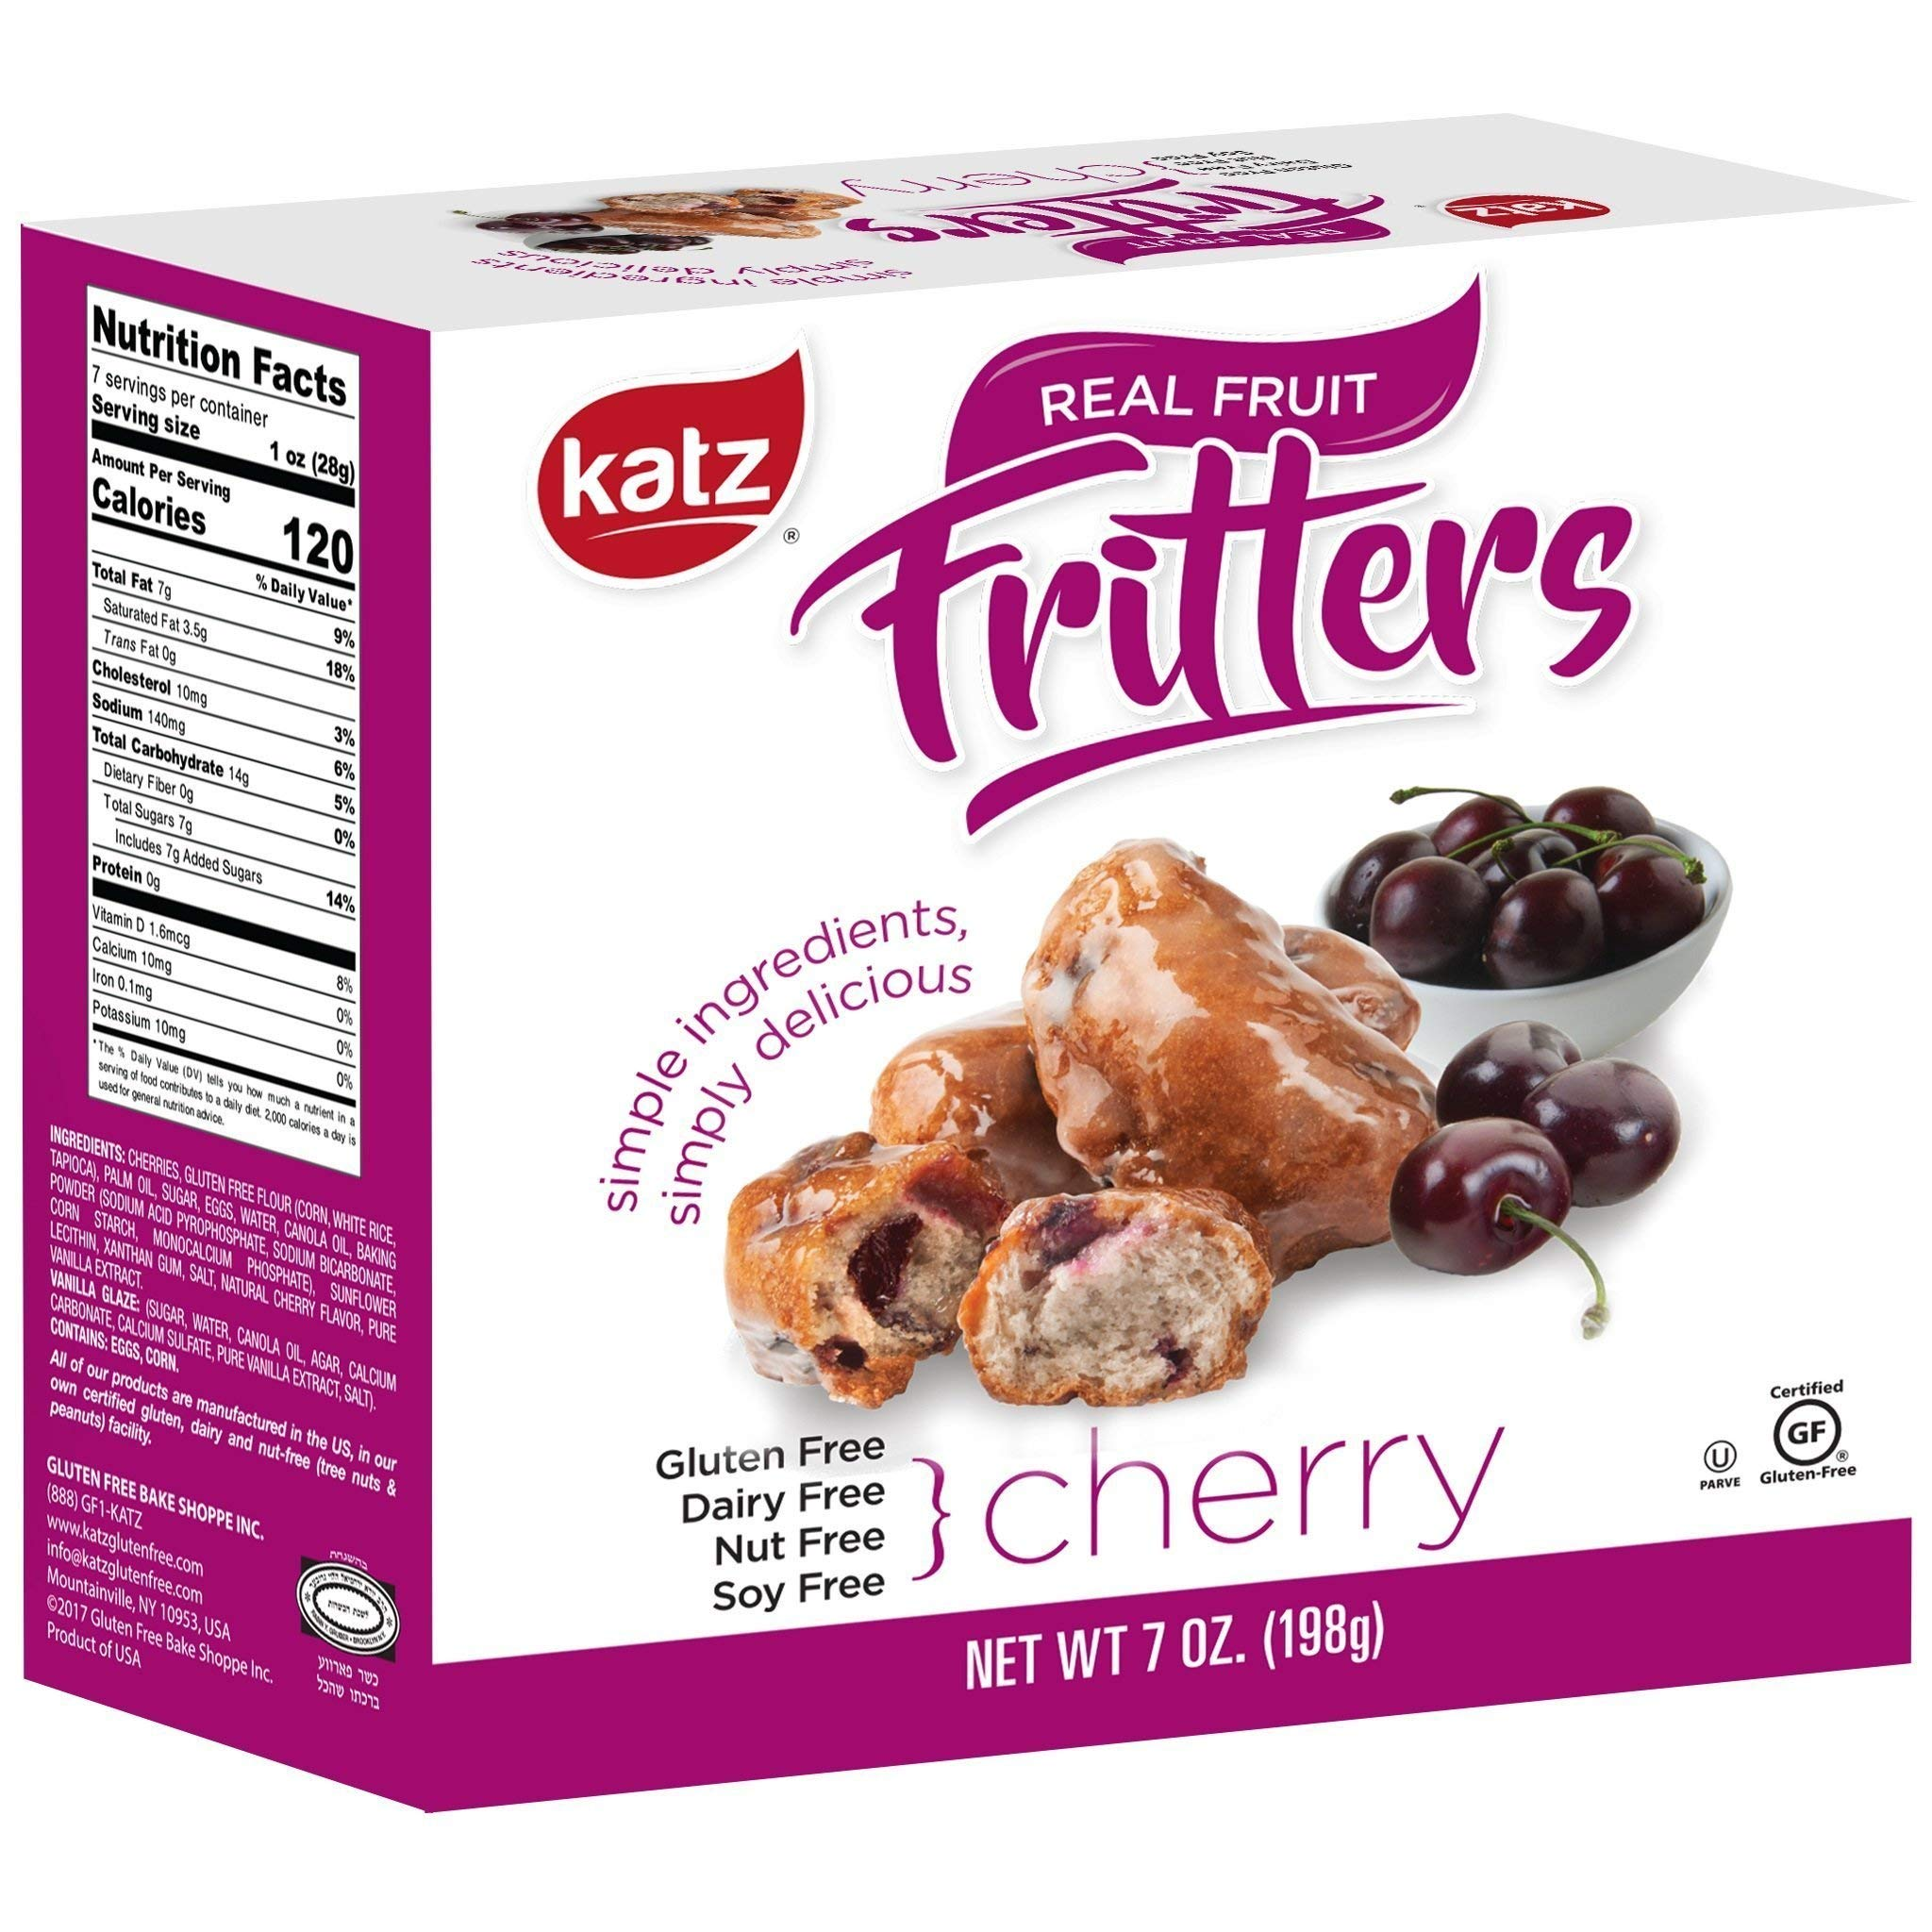 Katz Gluten Free Cherry Fritters | Dairy, Nut, Soy and Gluten Free | Kosher (3 Packs, 7 Ounce Each) by Katz Gluten Free